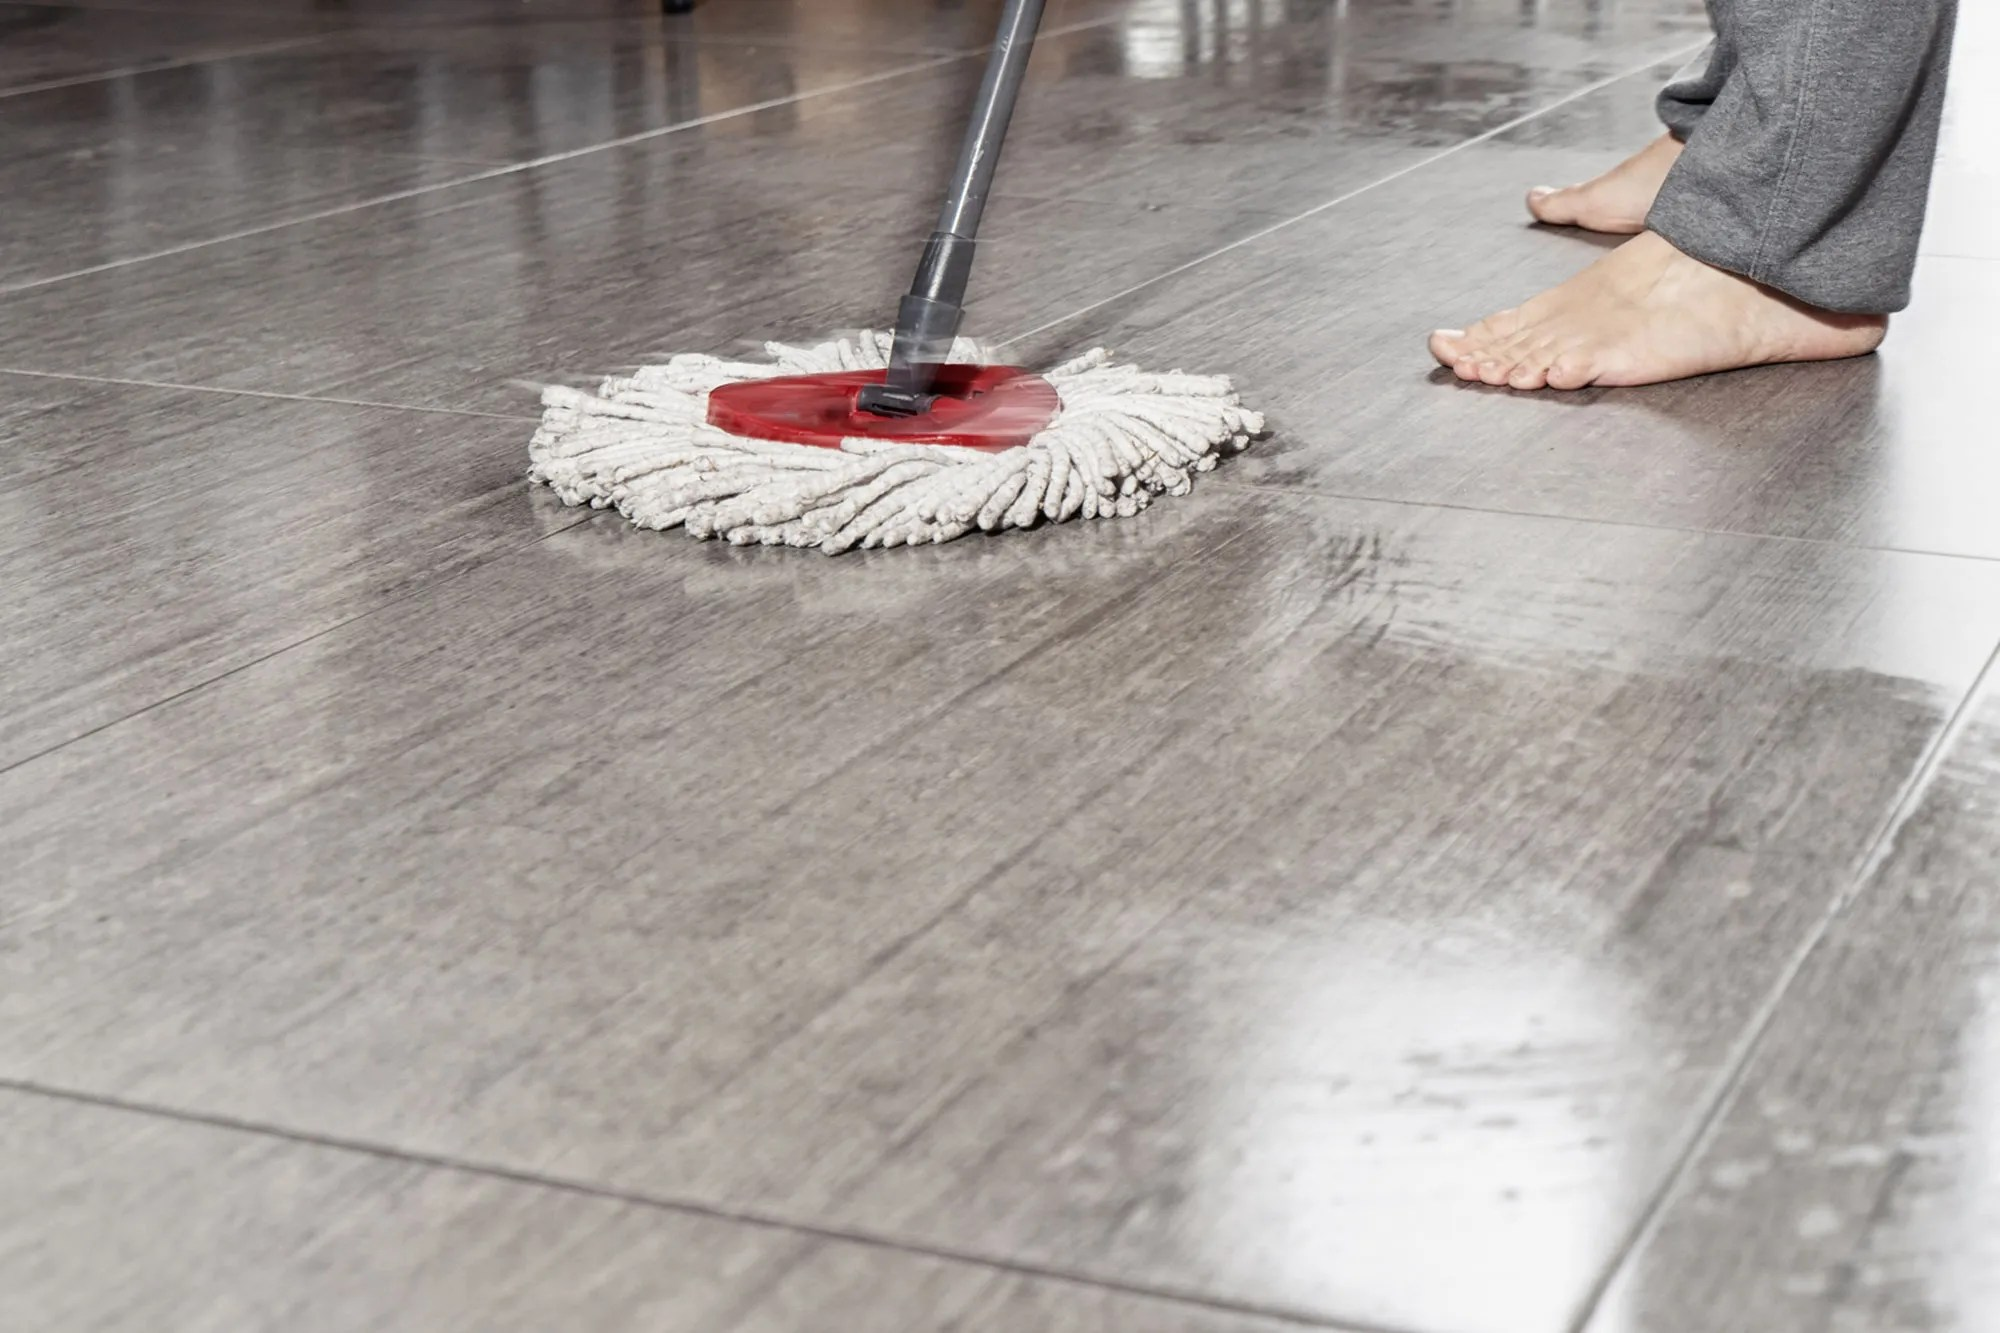 how to fix a squeaky floor without